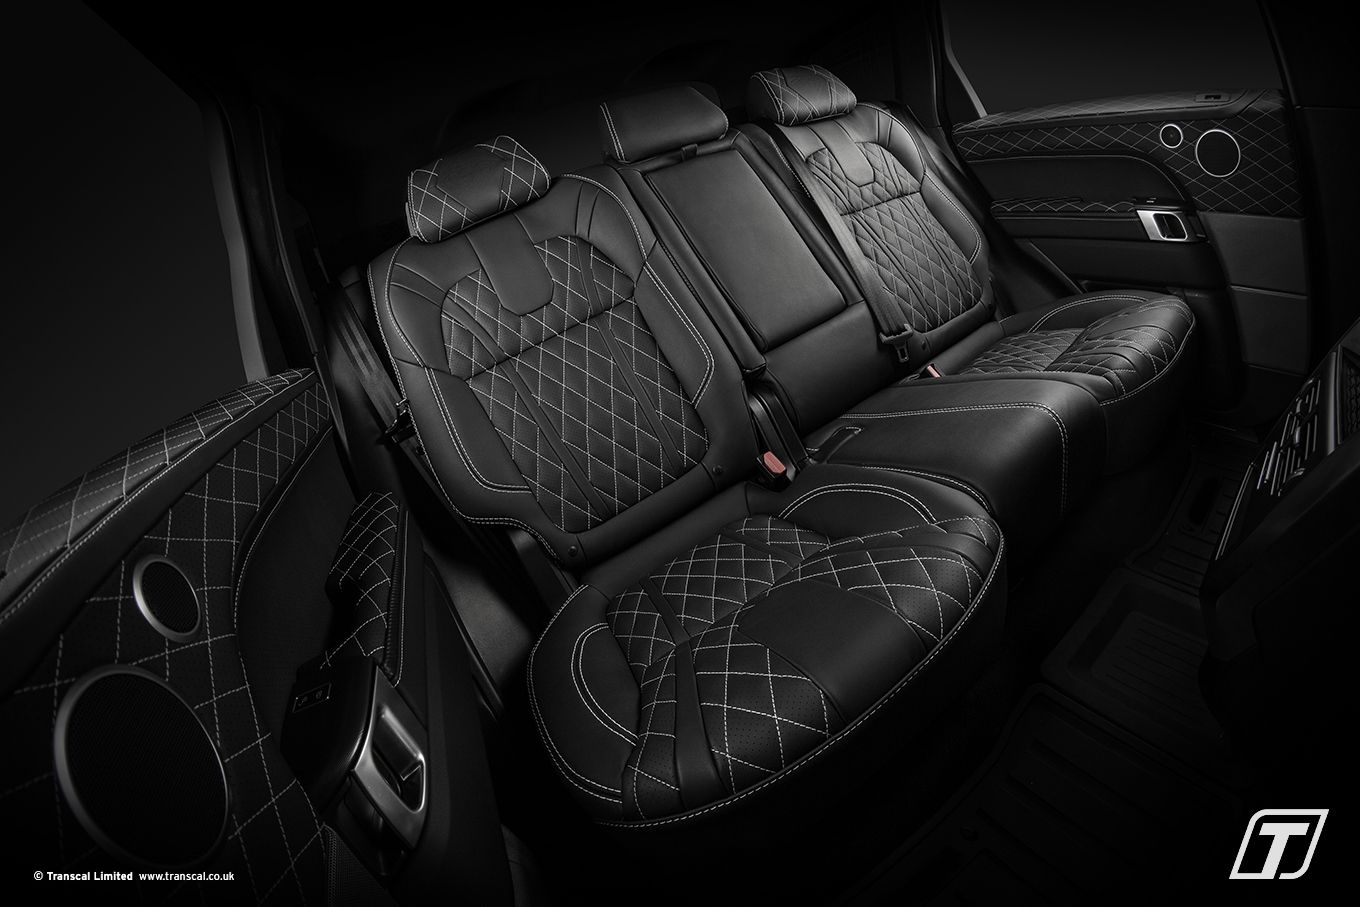 Range Rover Sport Leather Interior Join Us On Www Facebook Com Transcal Automotive Upholstery Bespoke Cars Car Seats